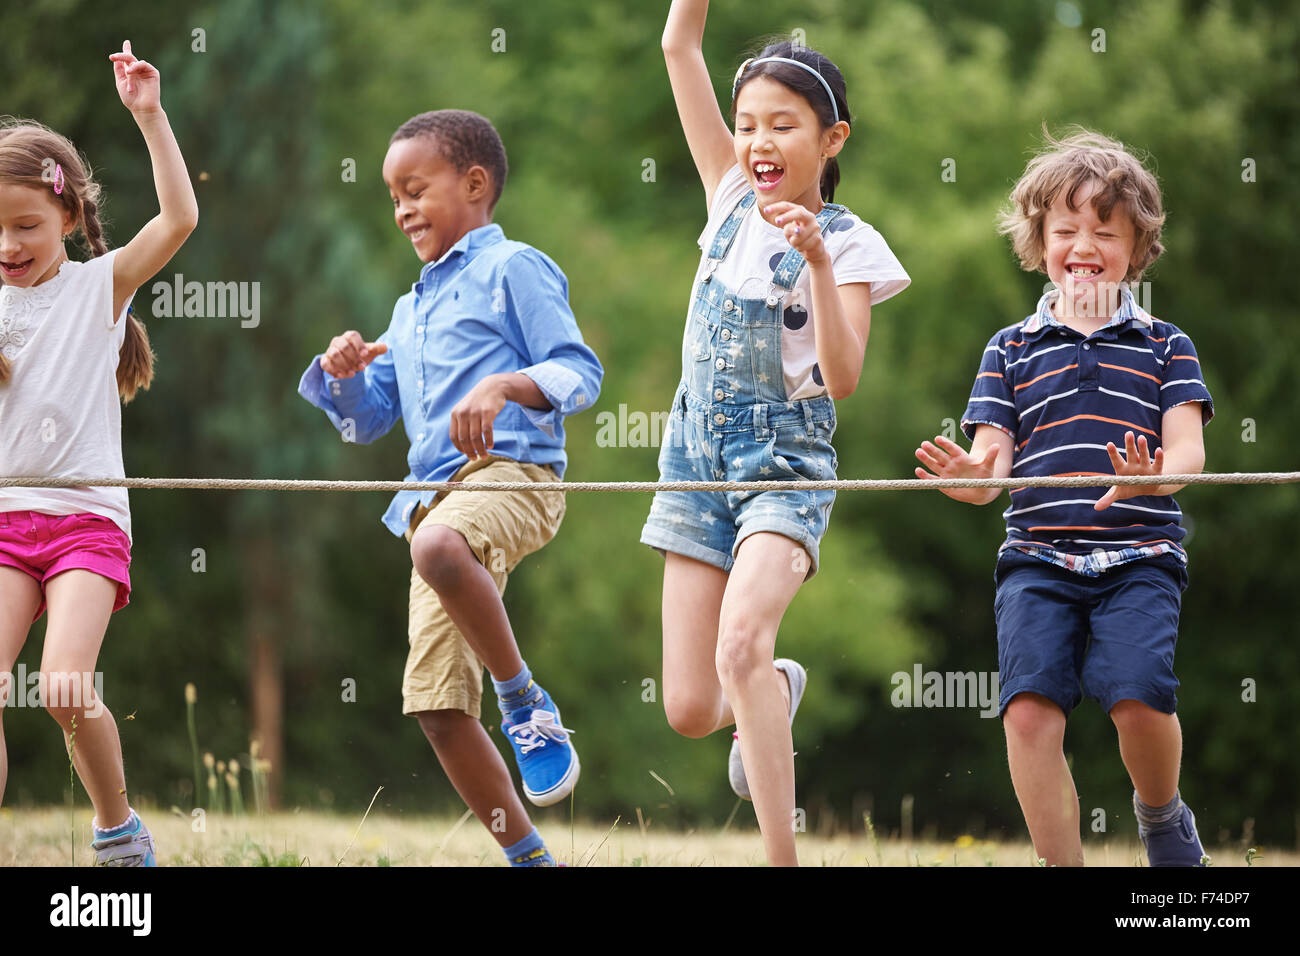 Children arriving to the finish line at a birthday party - Stock Image